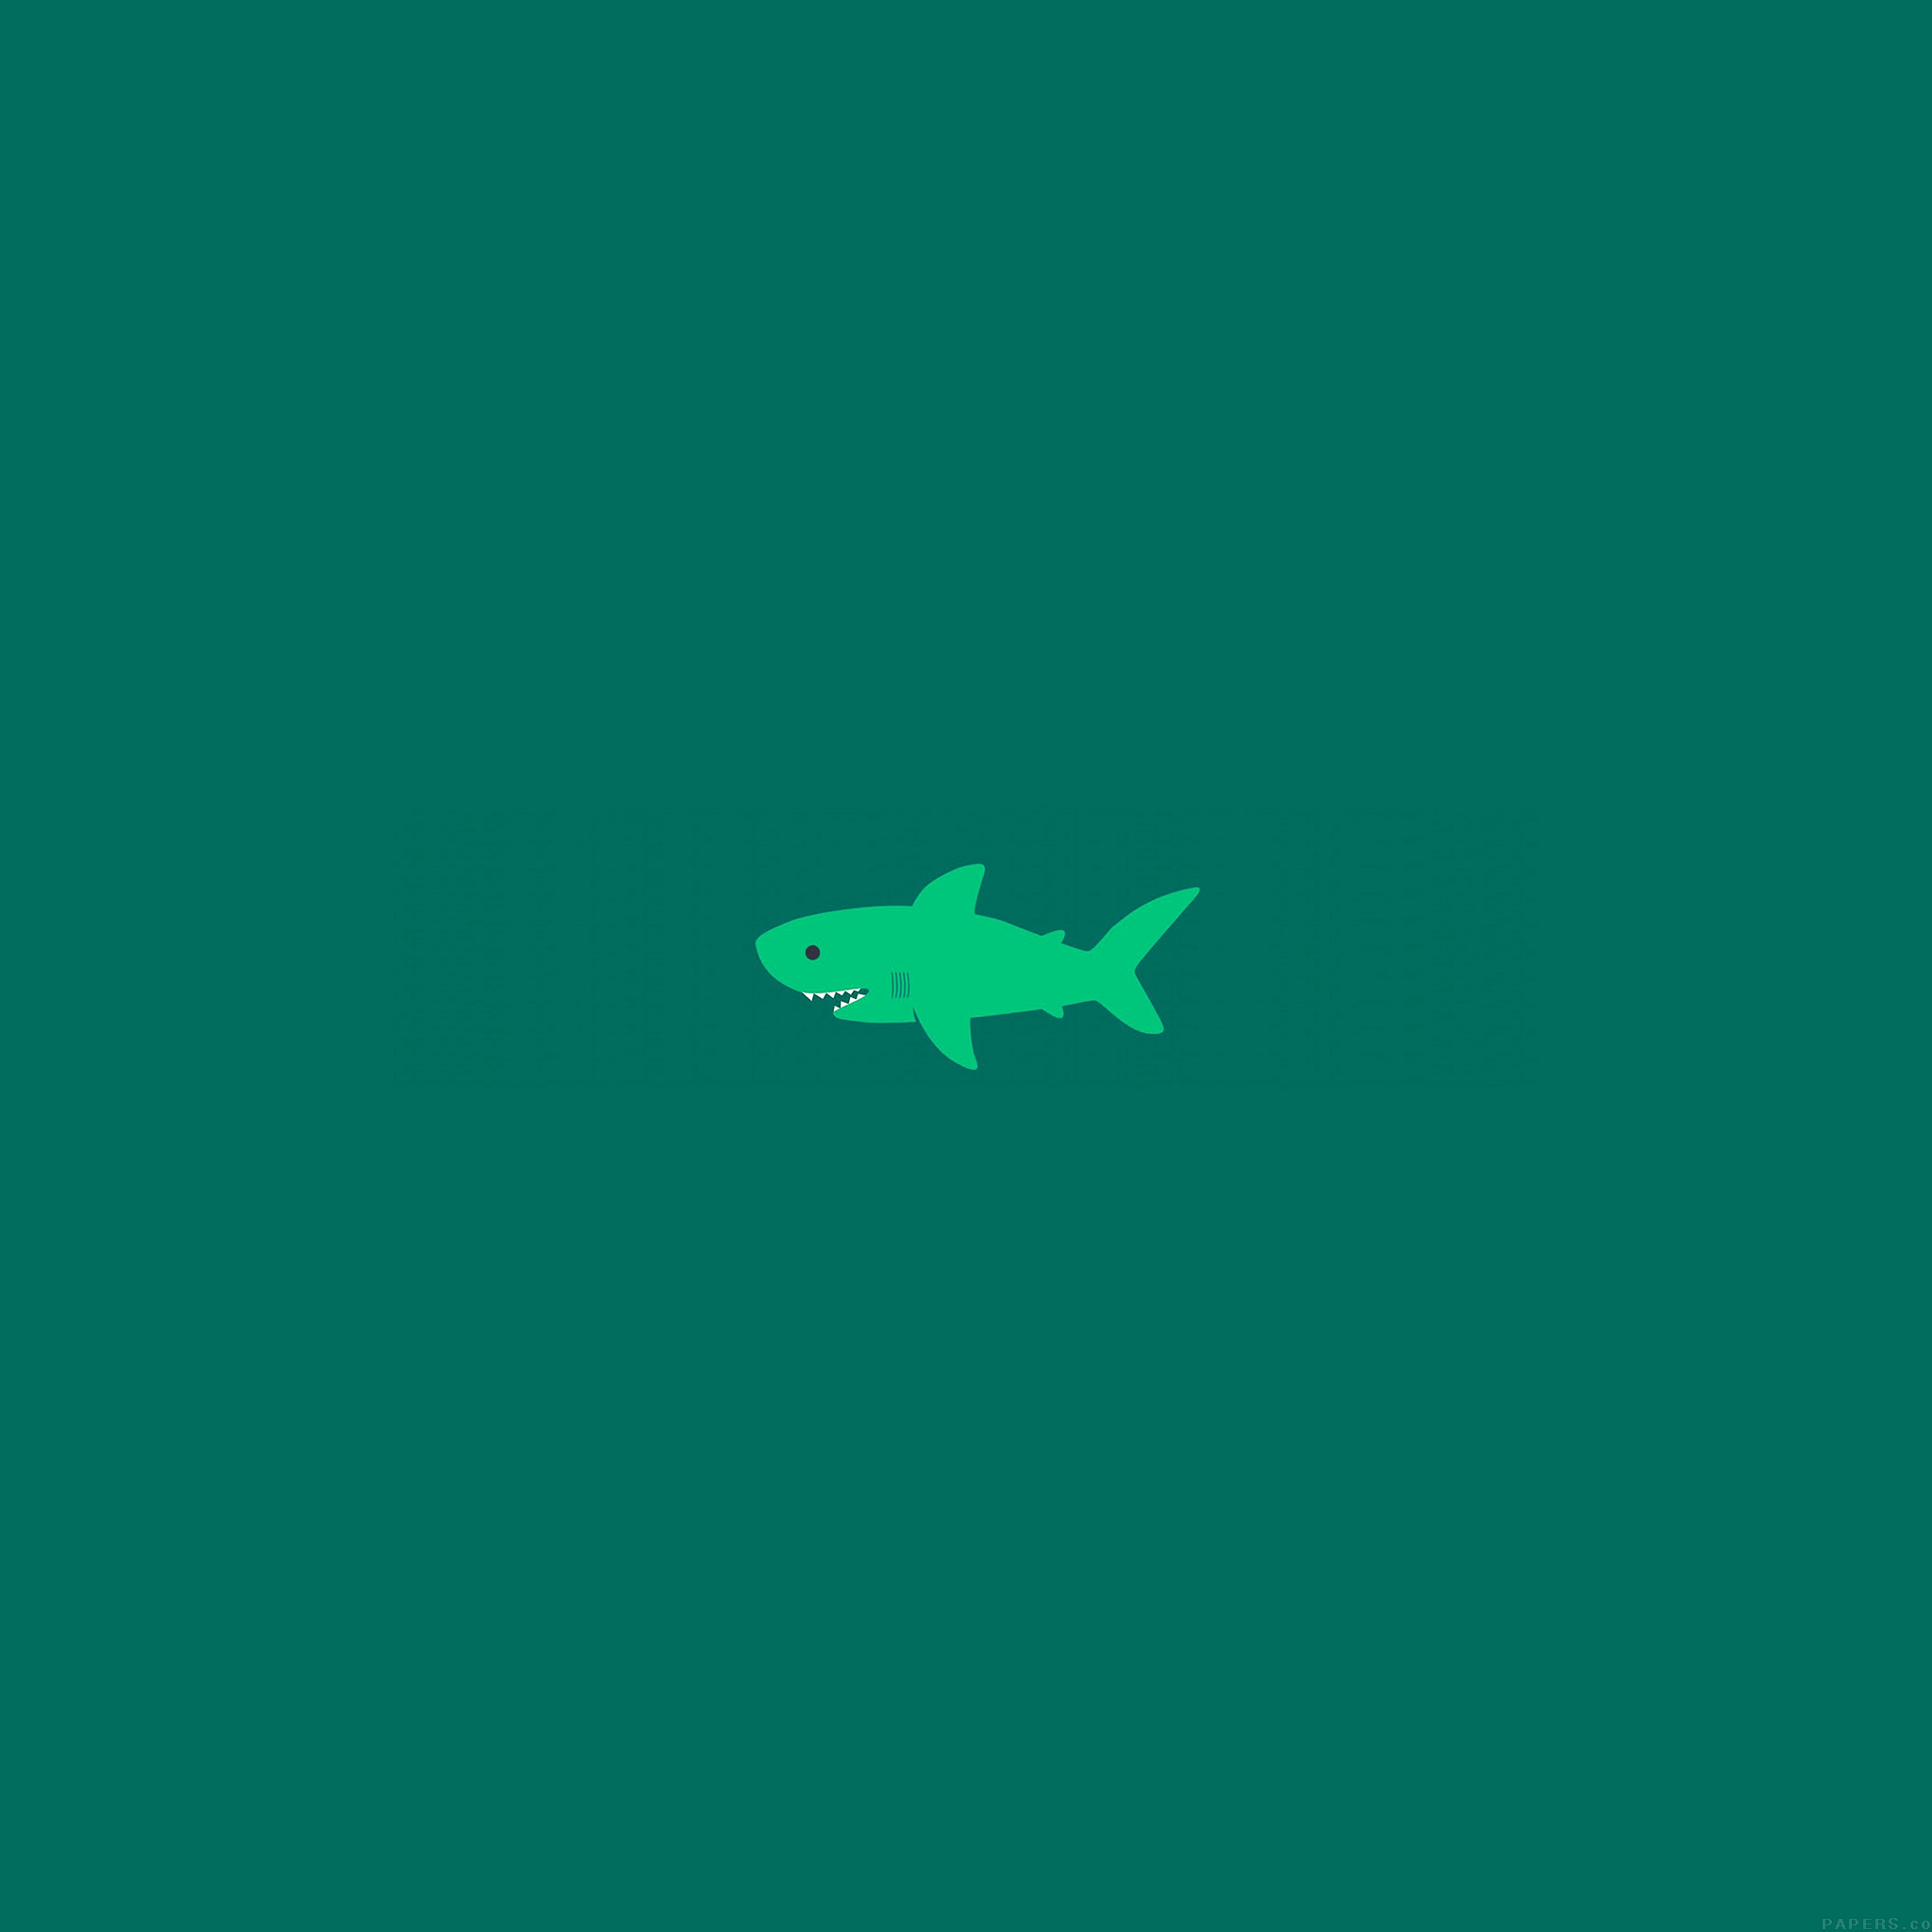 Wallpaper Iphone Minimalist: Ak02-little-small-cute-shark-green-minimal-wallpaper